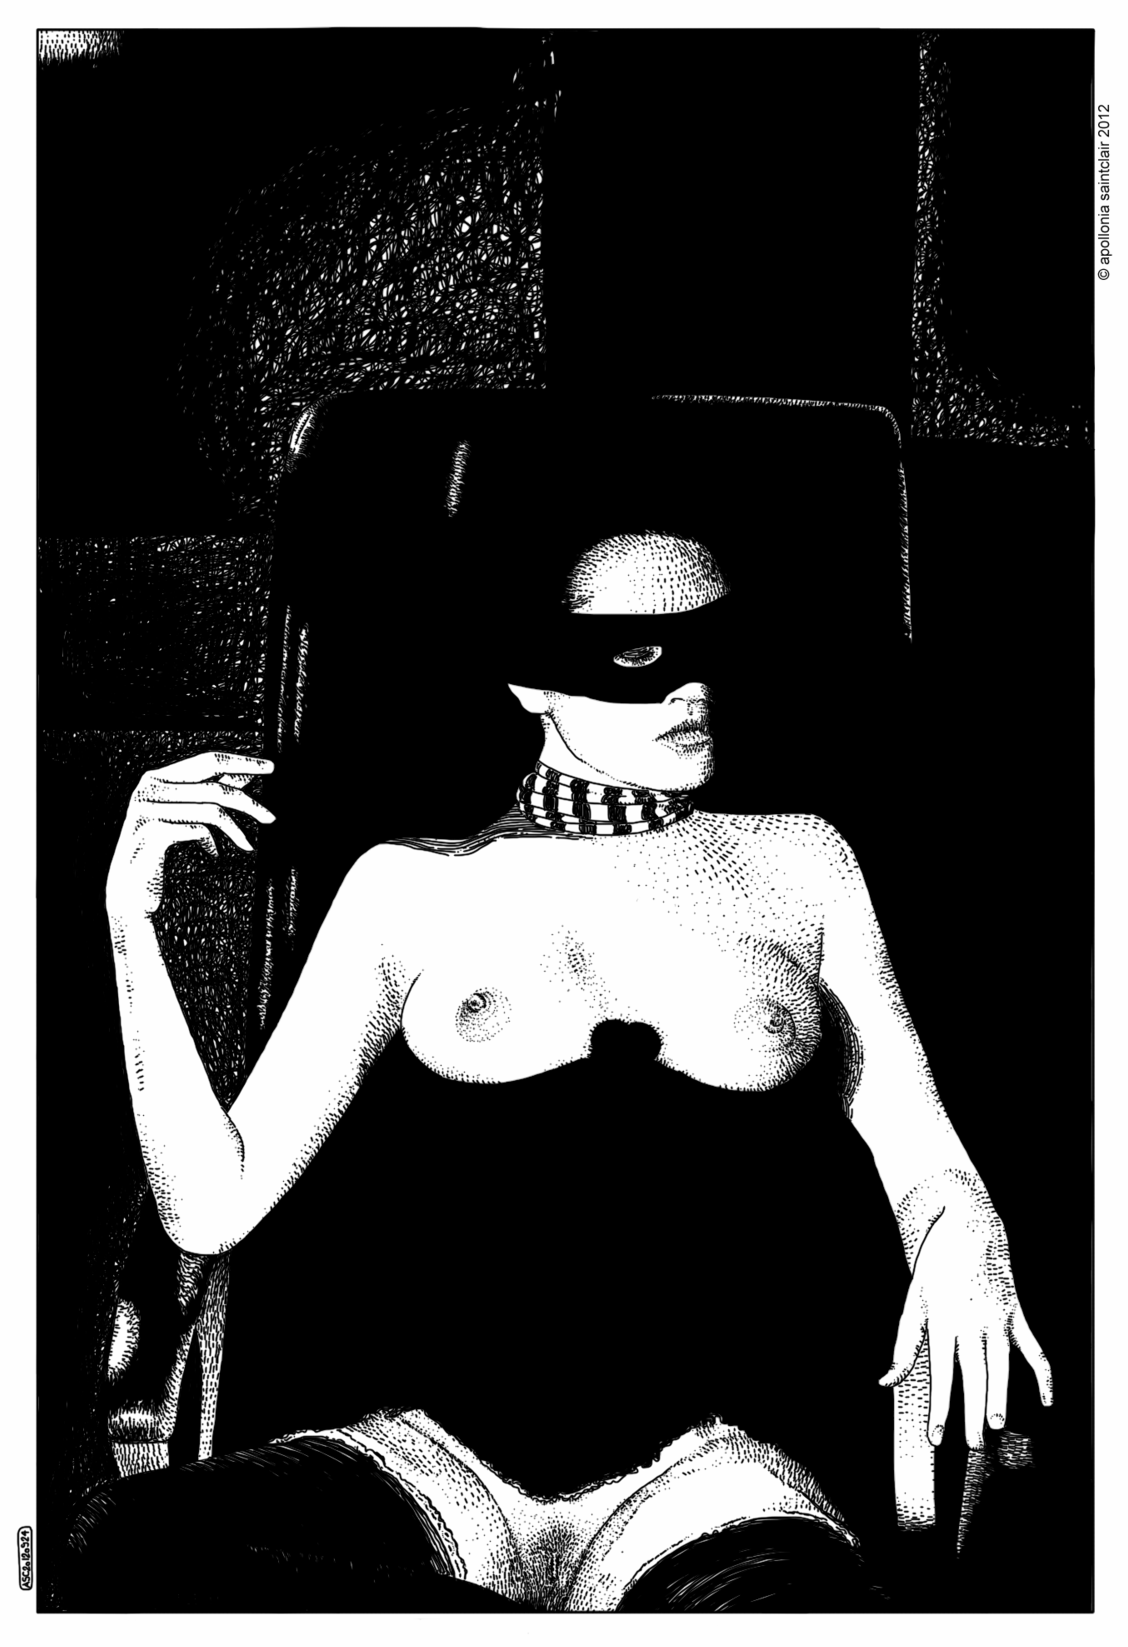 Apollonia Saintclair arte provocativo erotico 14